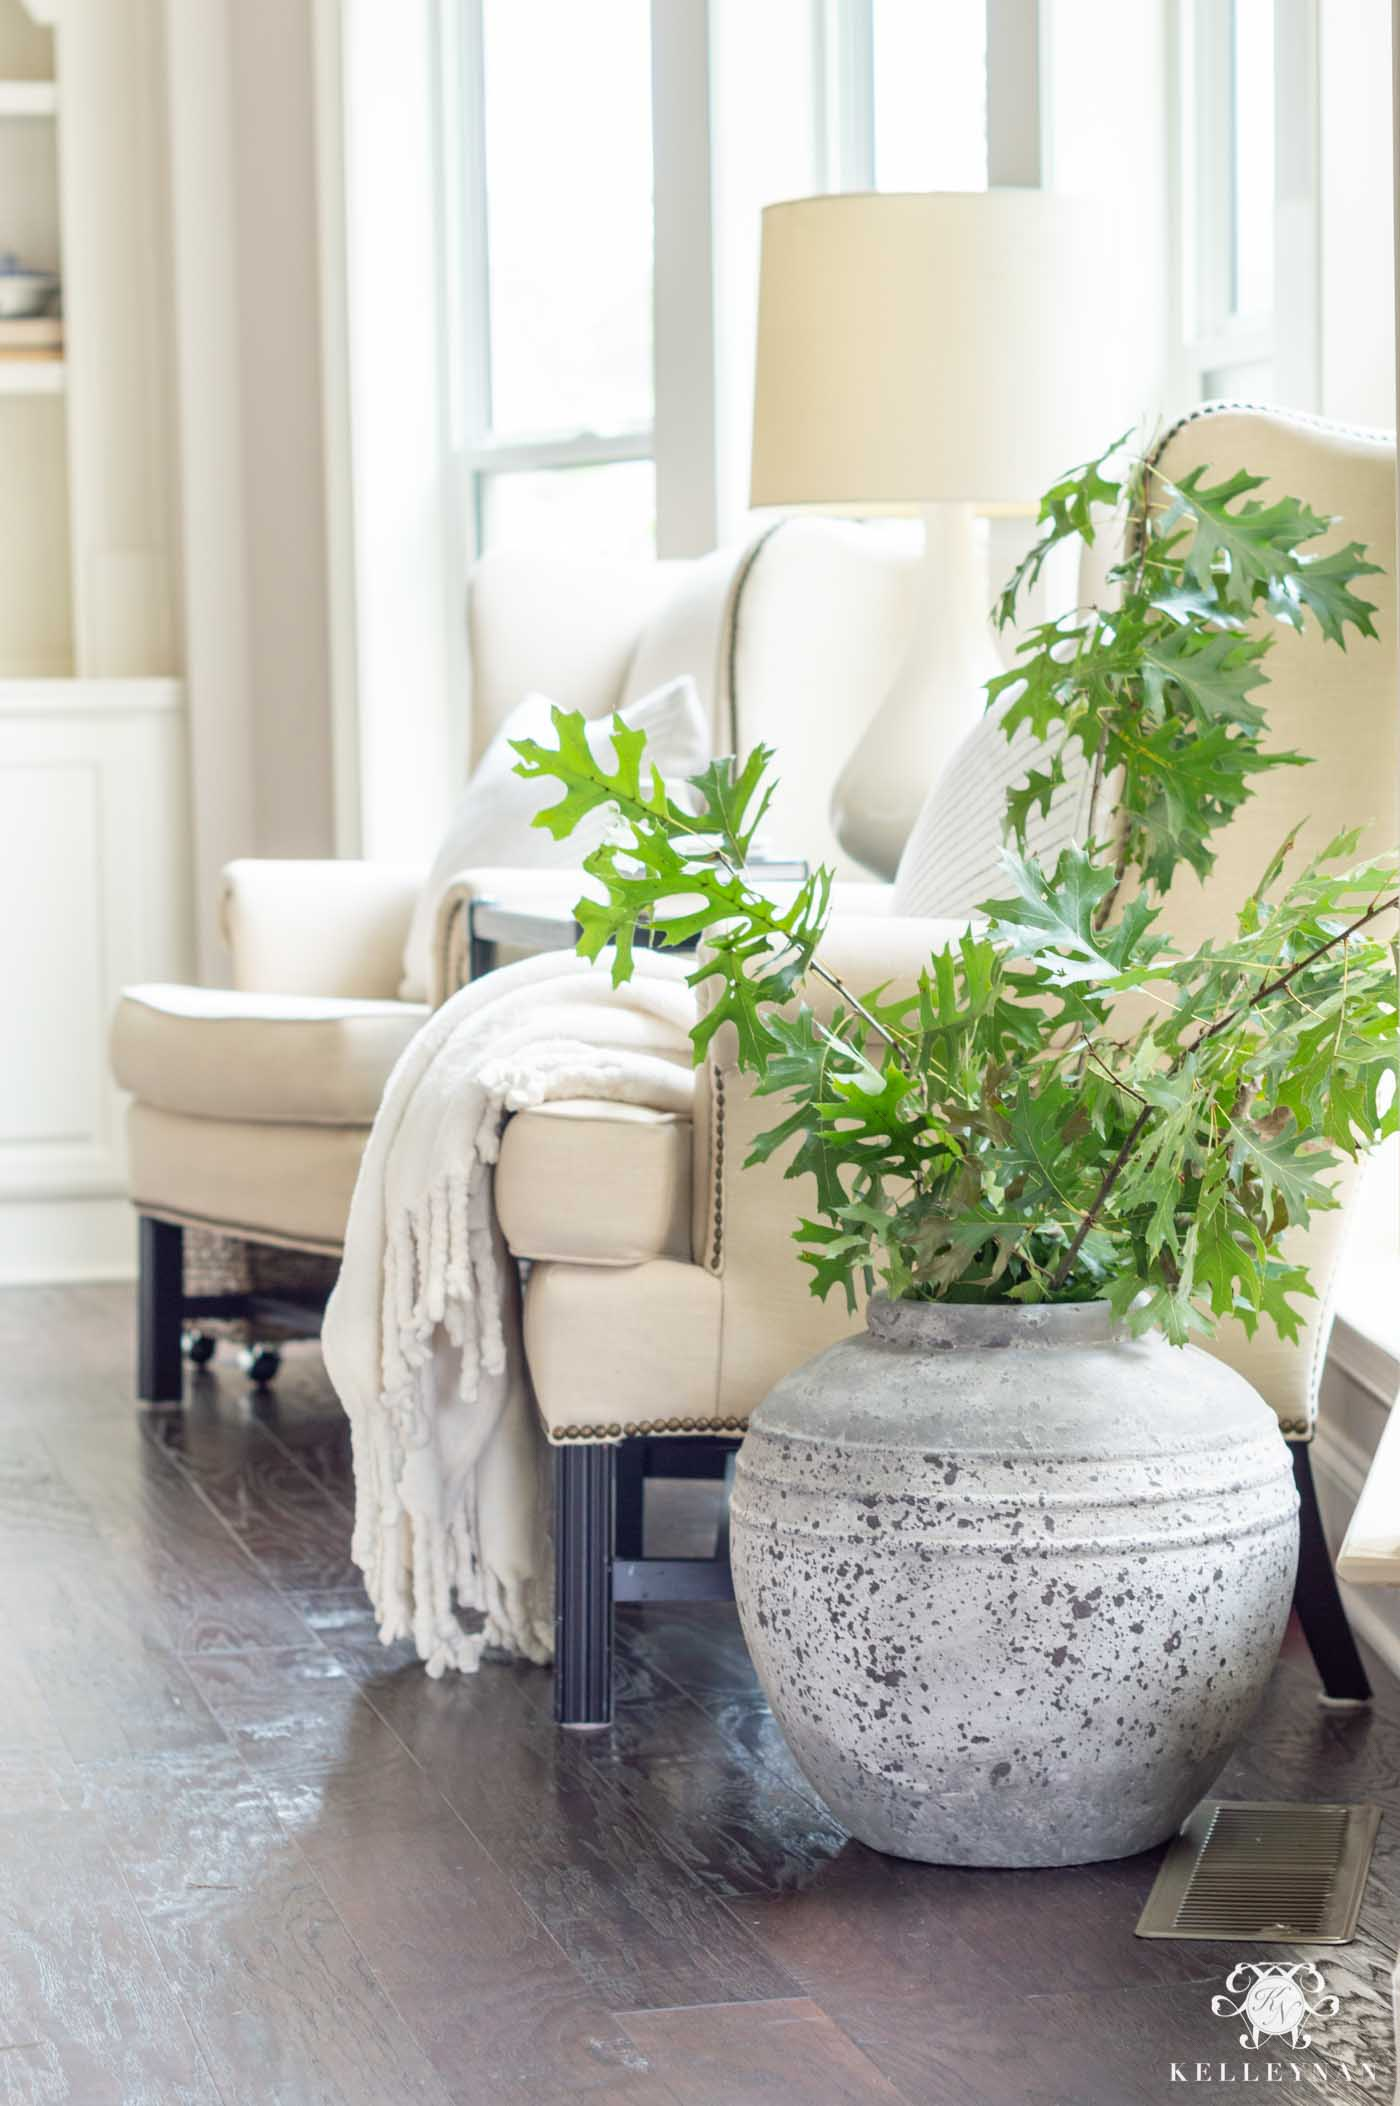 How to Decorate Your Home in Early Fall with Stems and Foliage from Outside